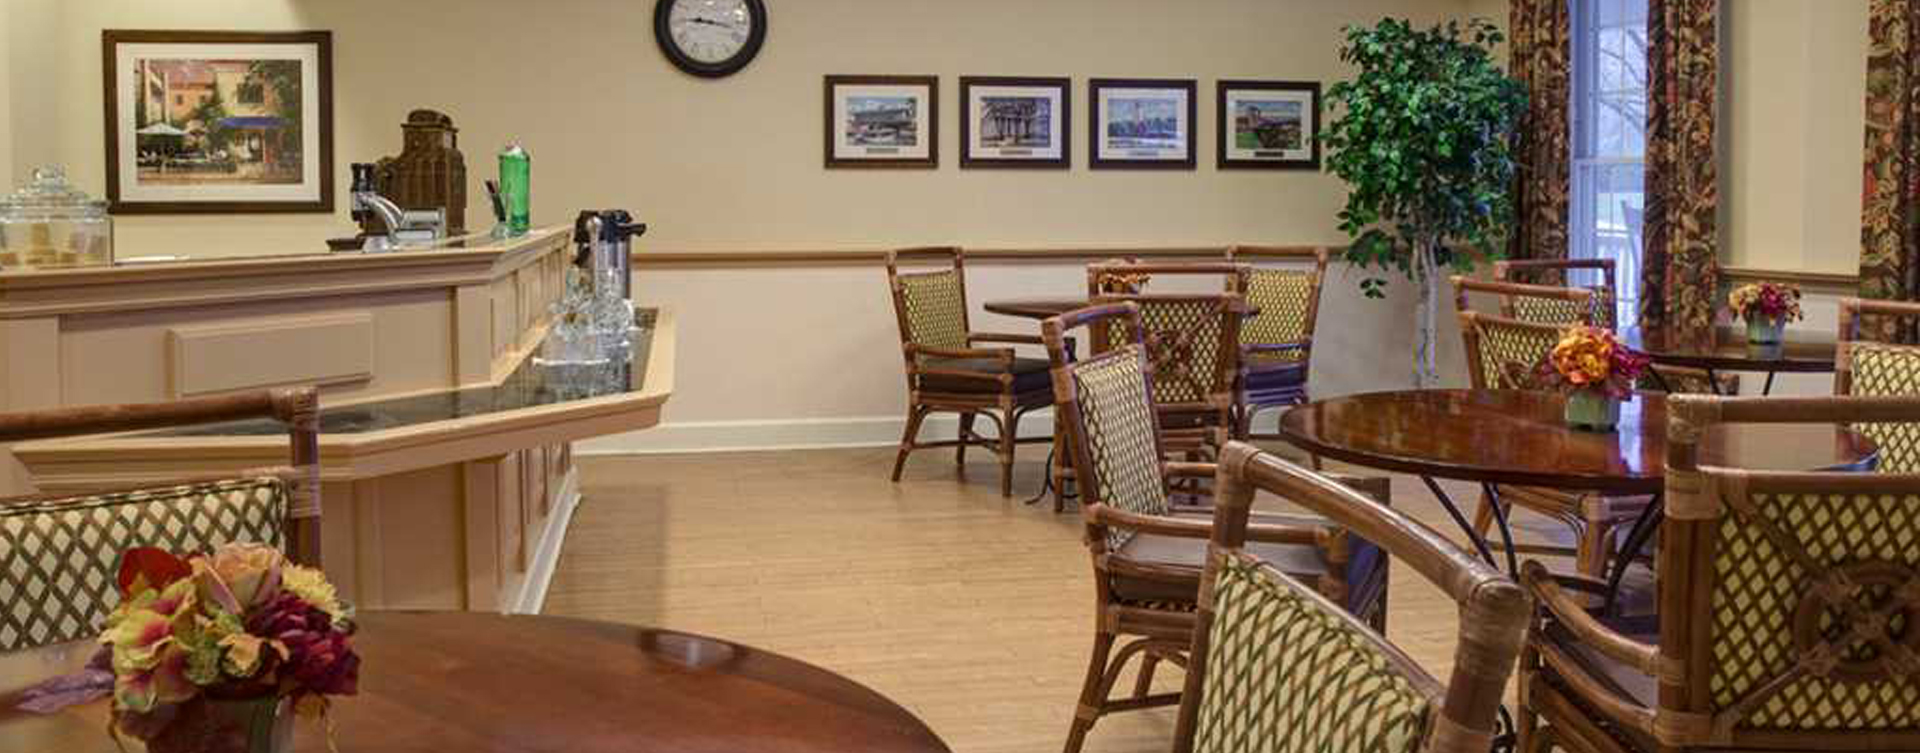 Mingle and converse with old and new friends alike in the bistro at Bickford of Presque Isle Bay